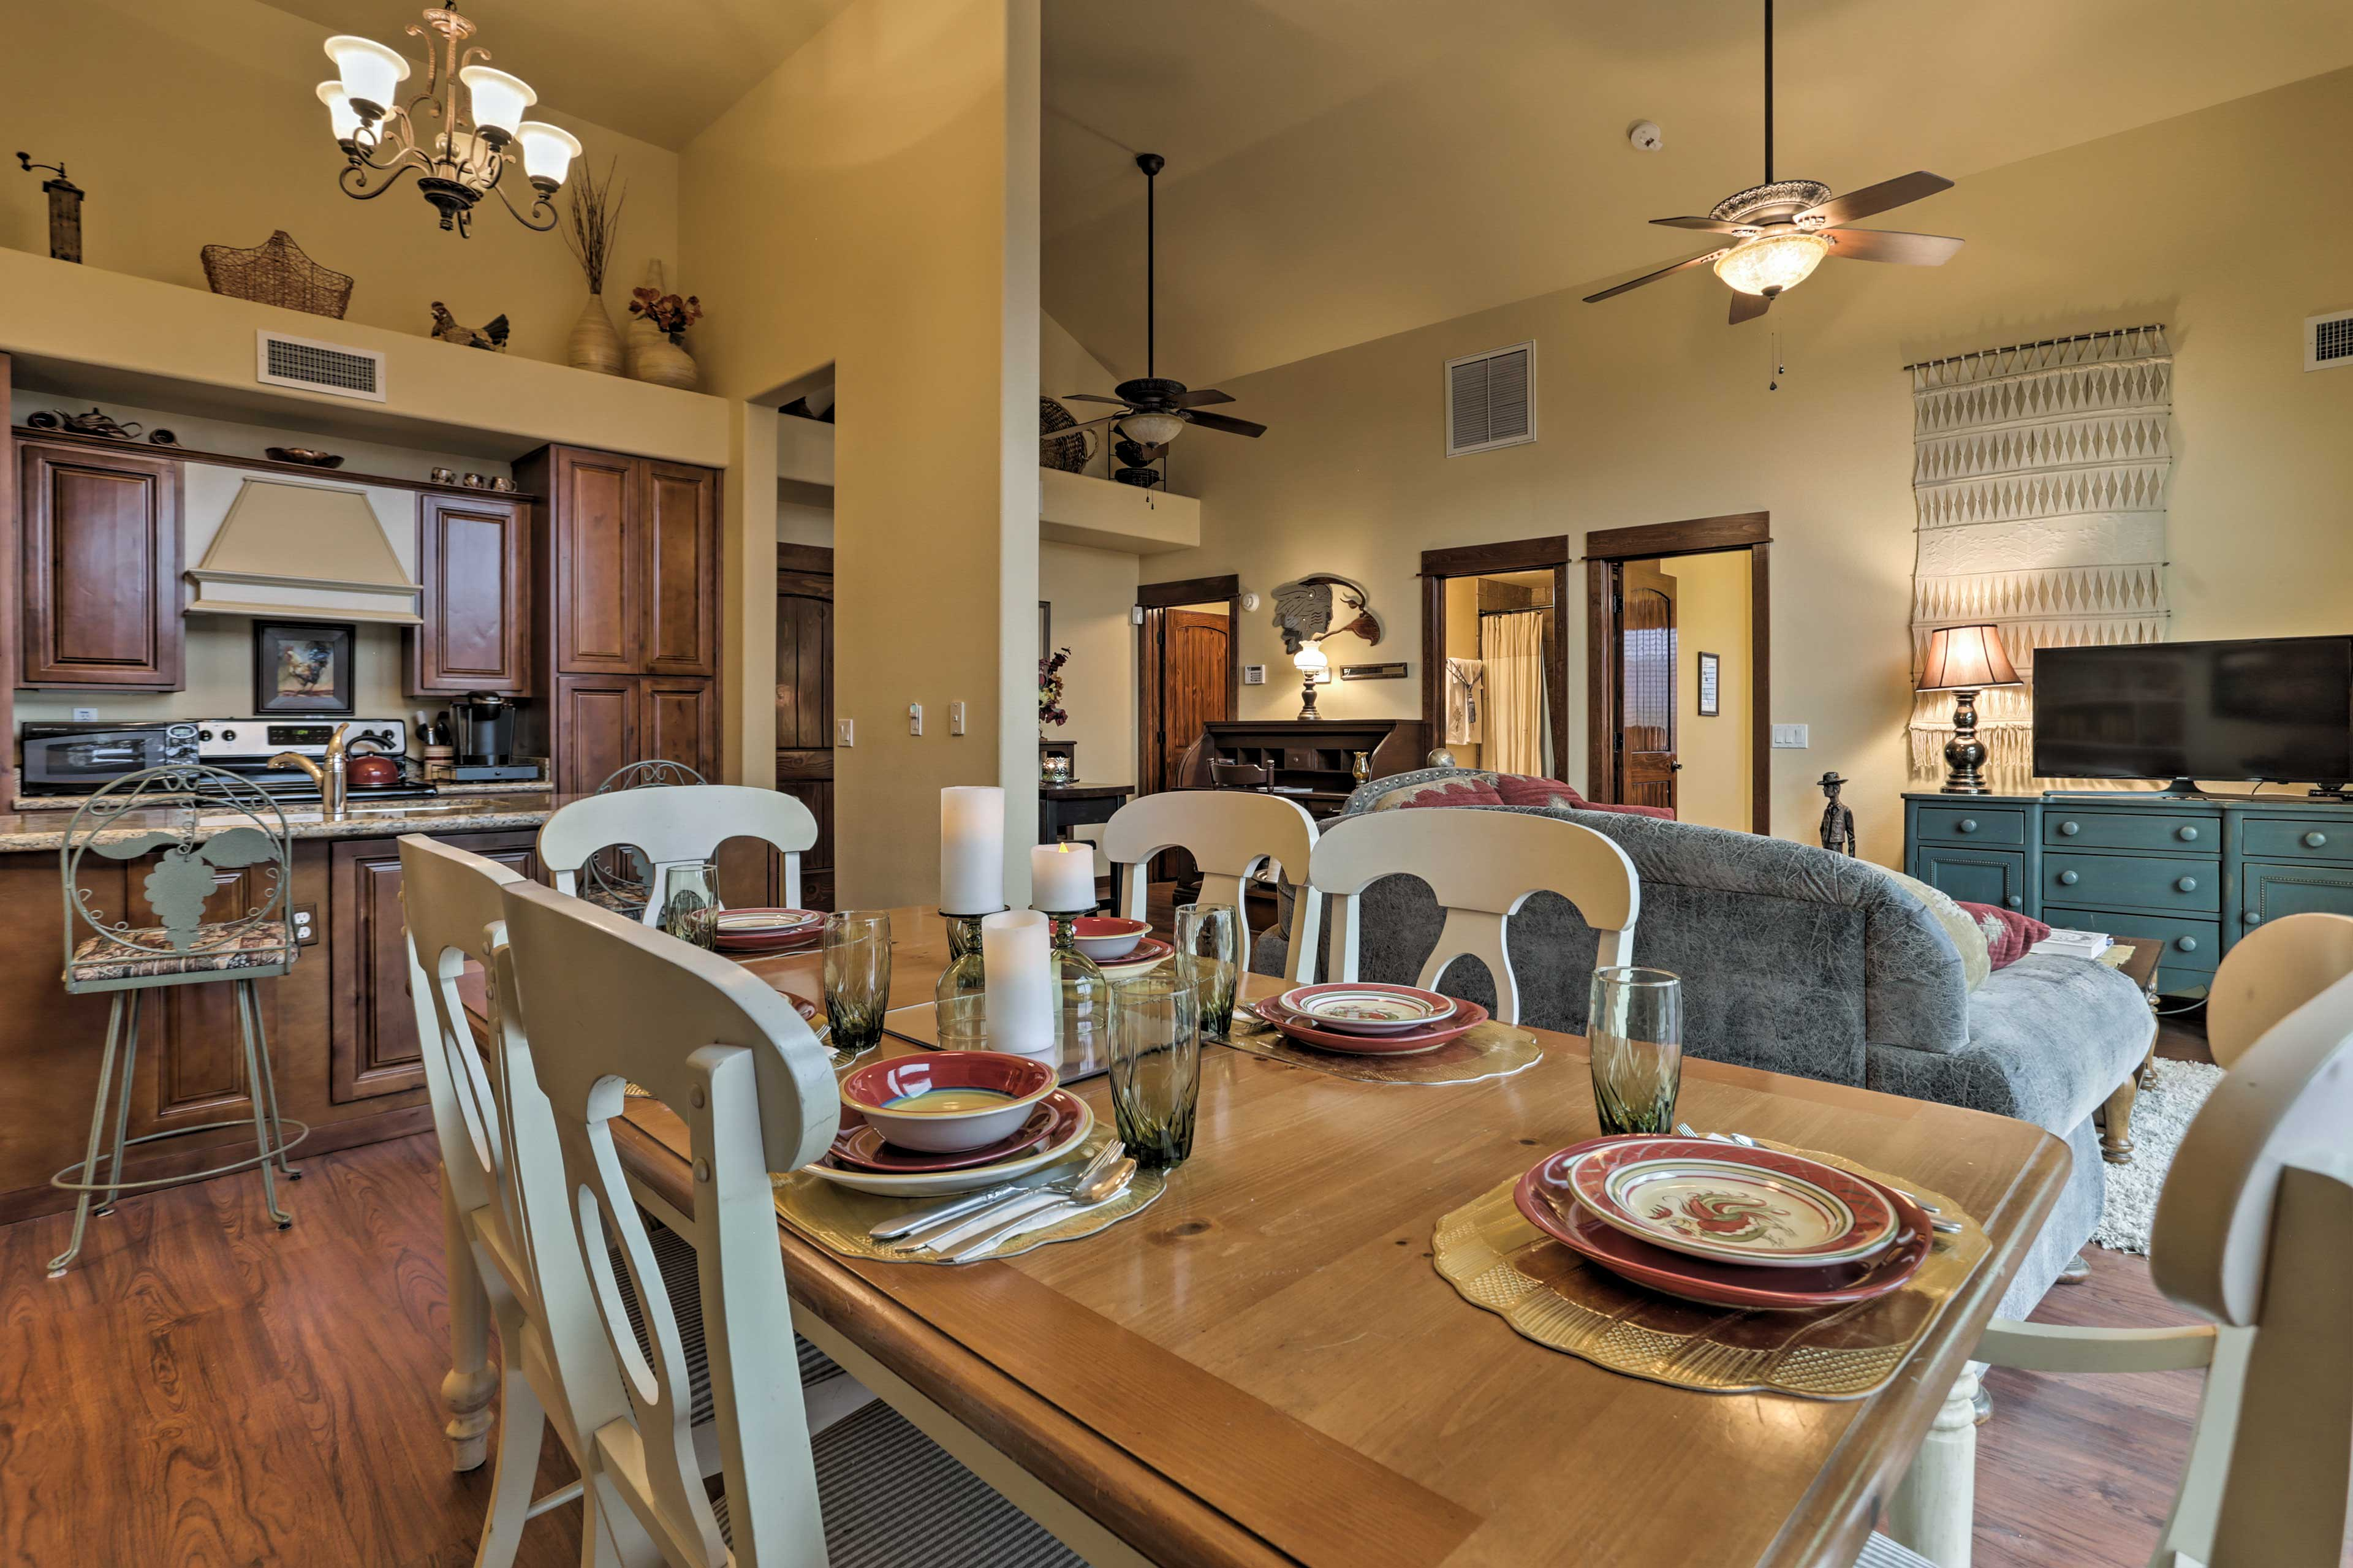 Relish homemade meals around the 6-person dining table.